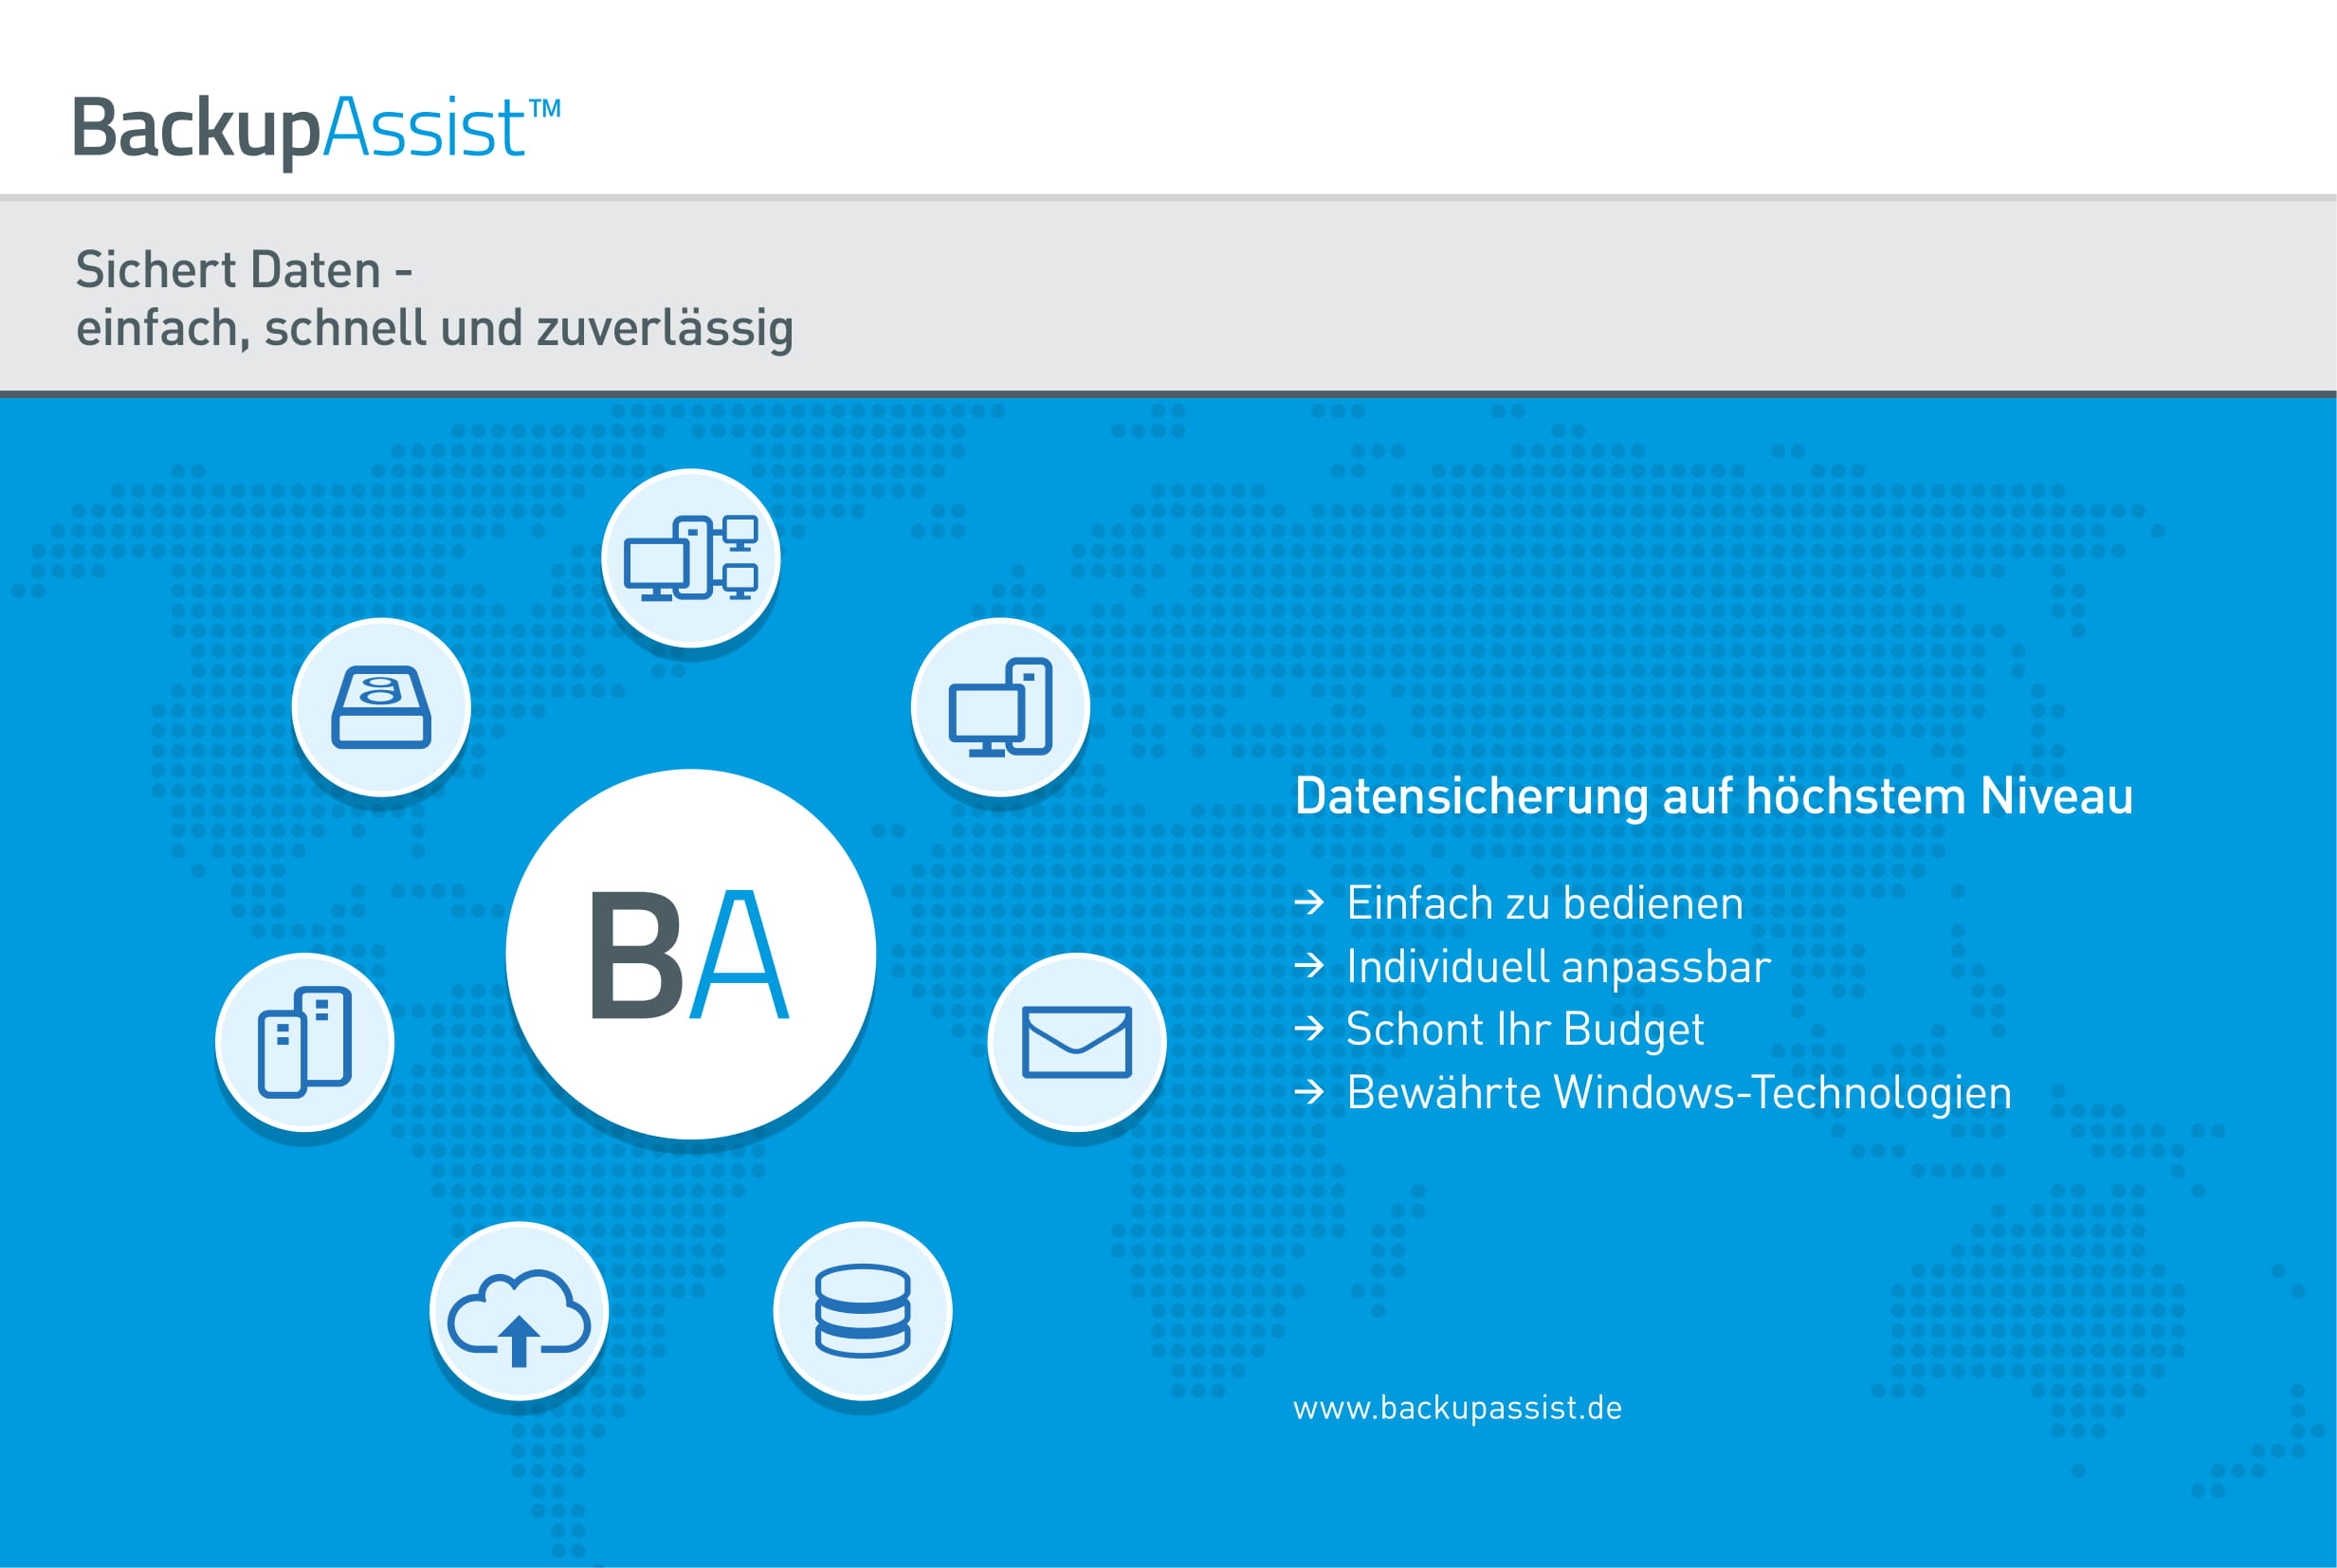 BackupAssist-Flyer-1